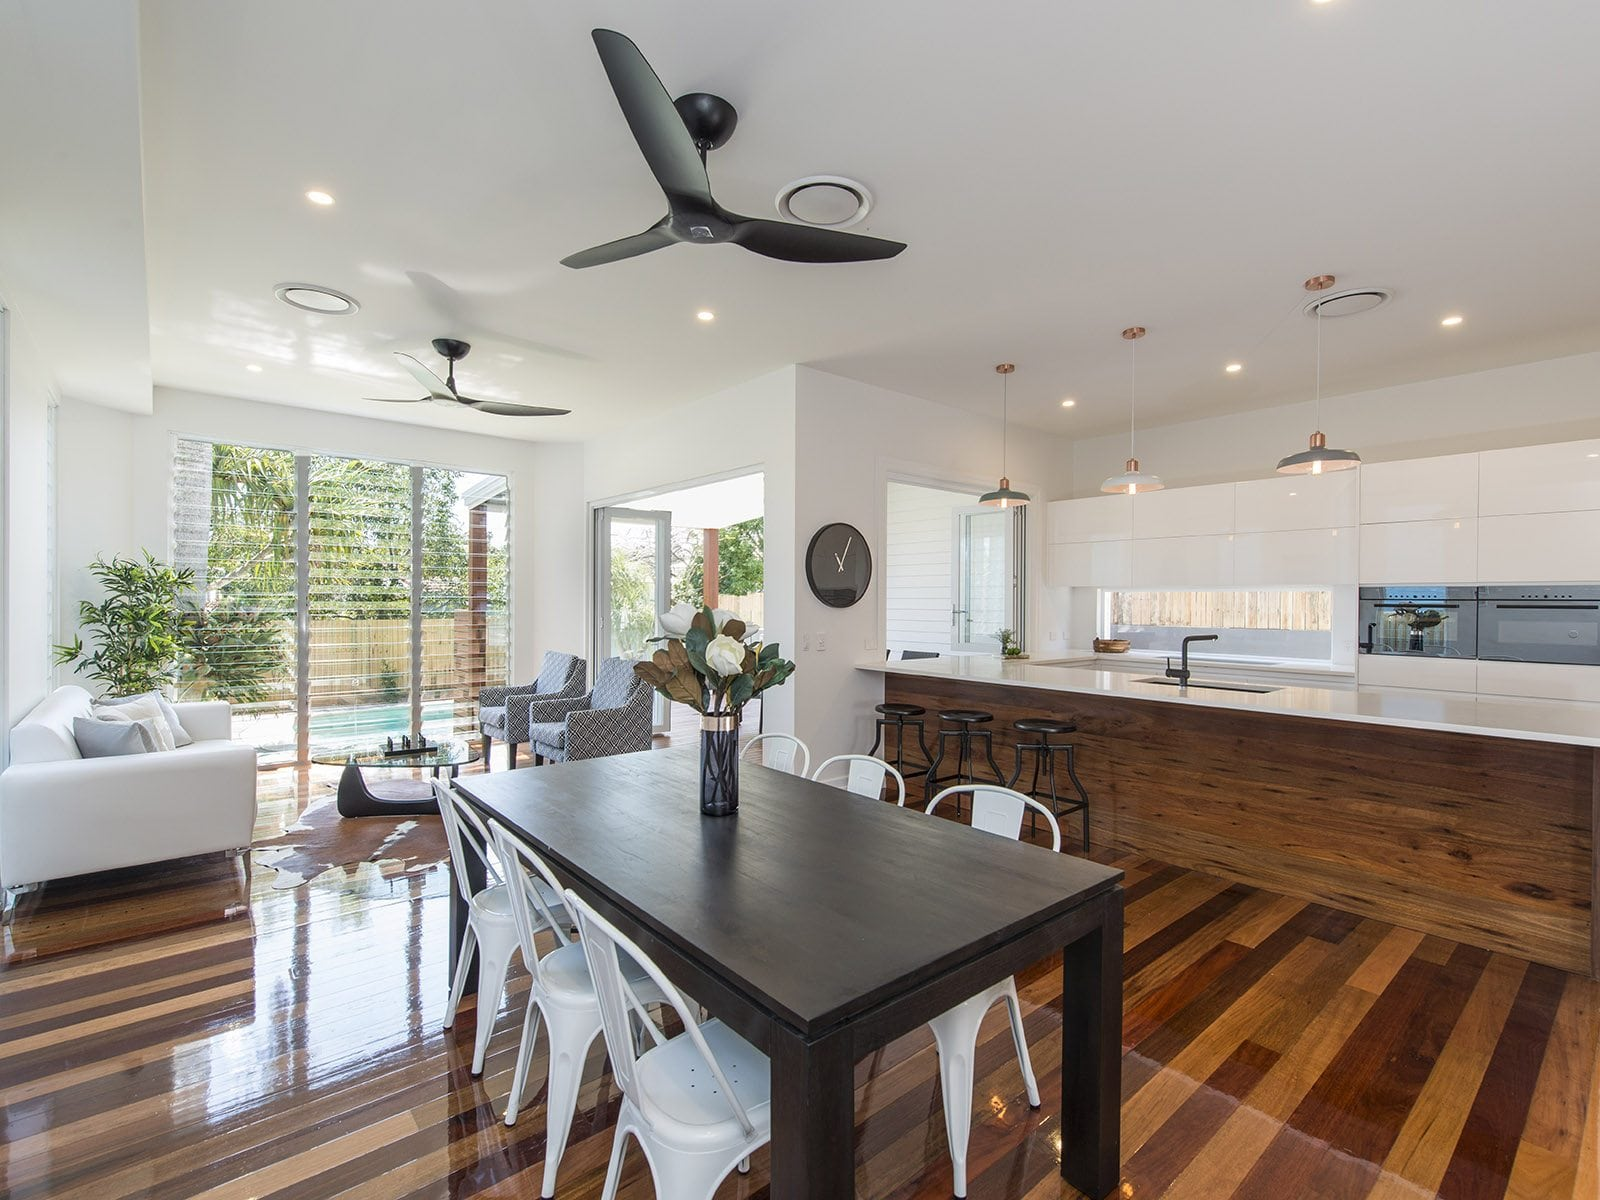 100 kitchen designers brisbane heritage renovation amazing